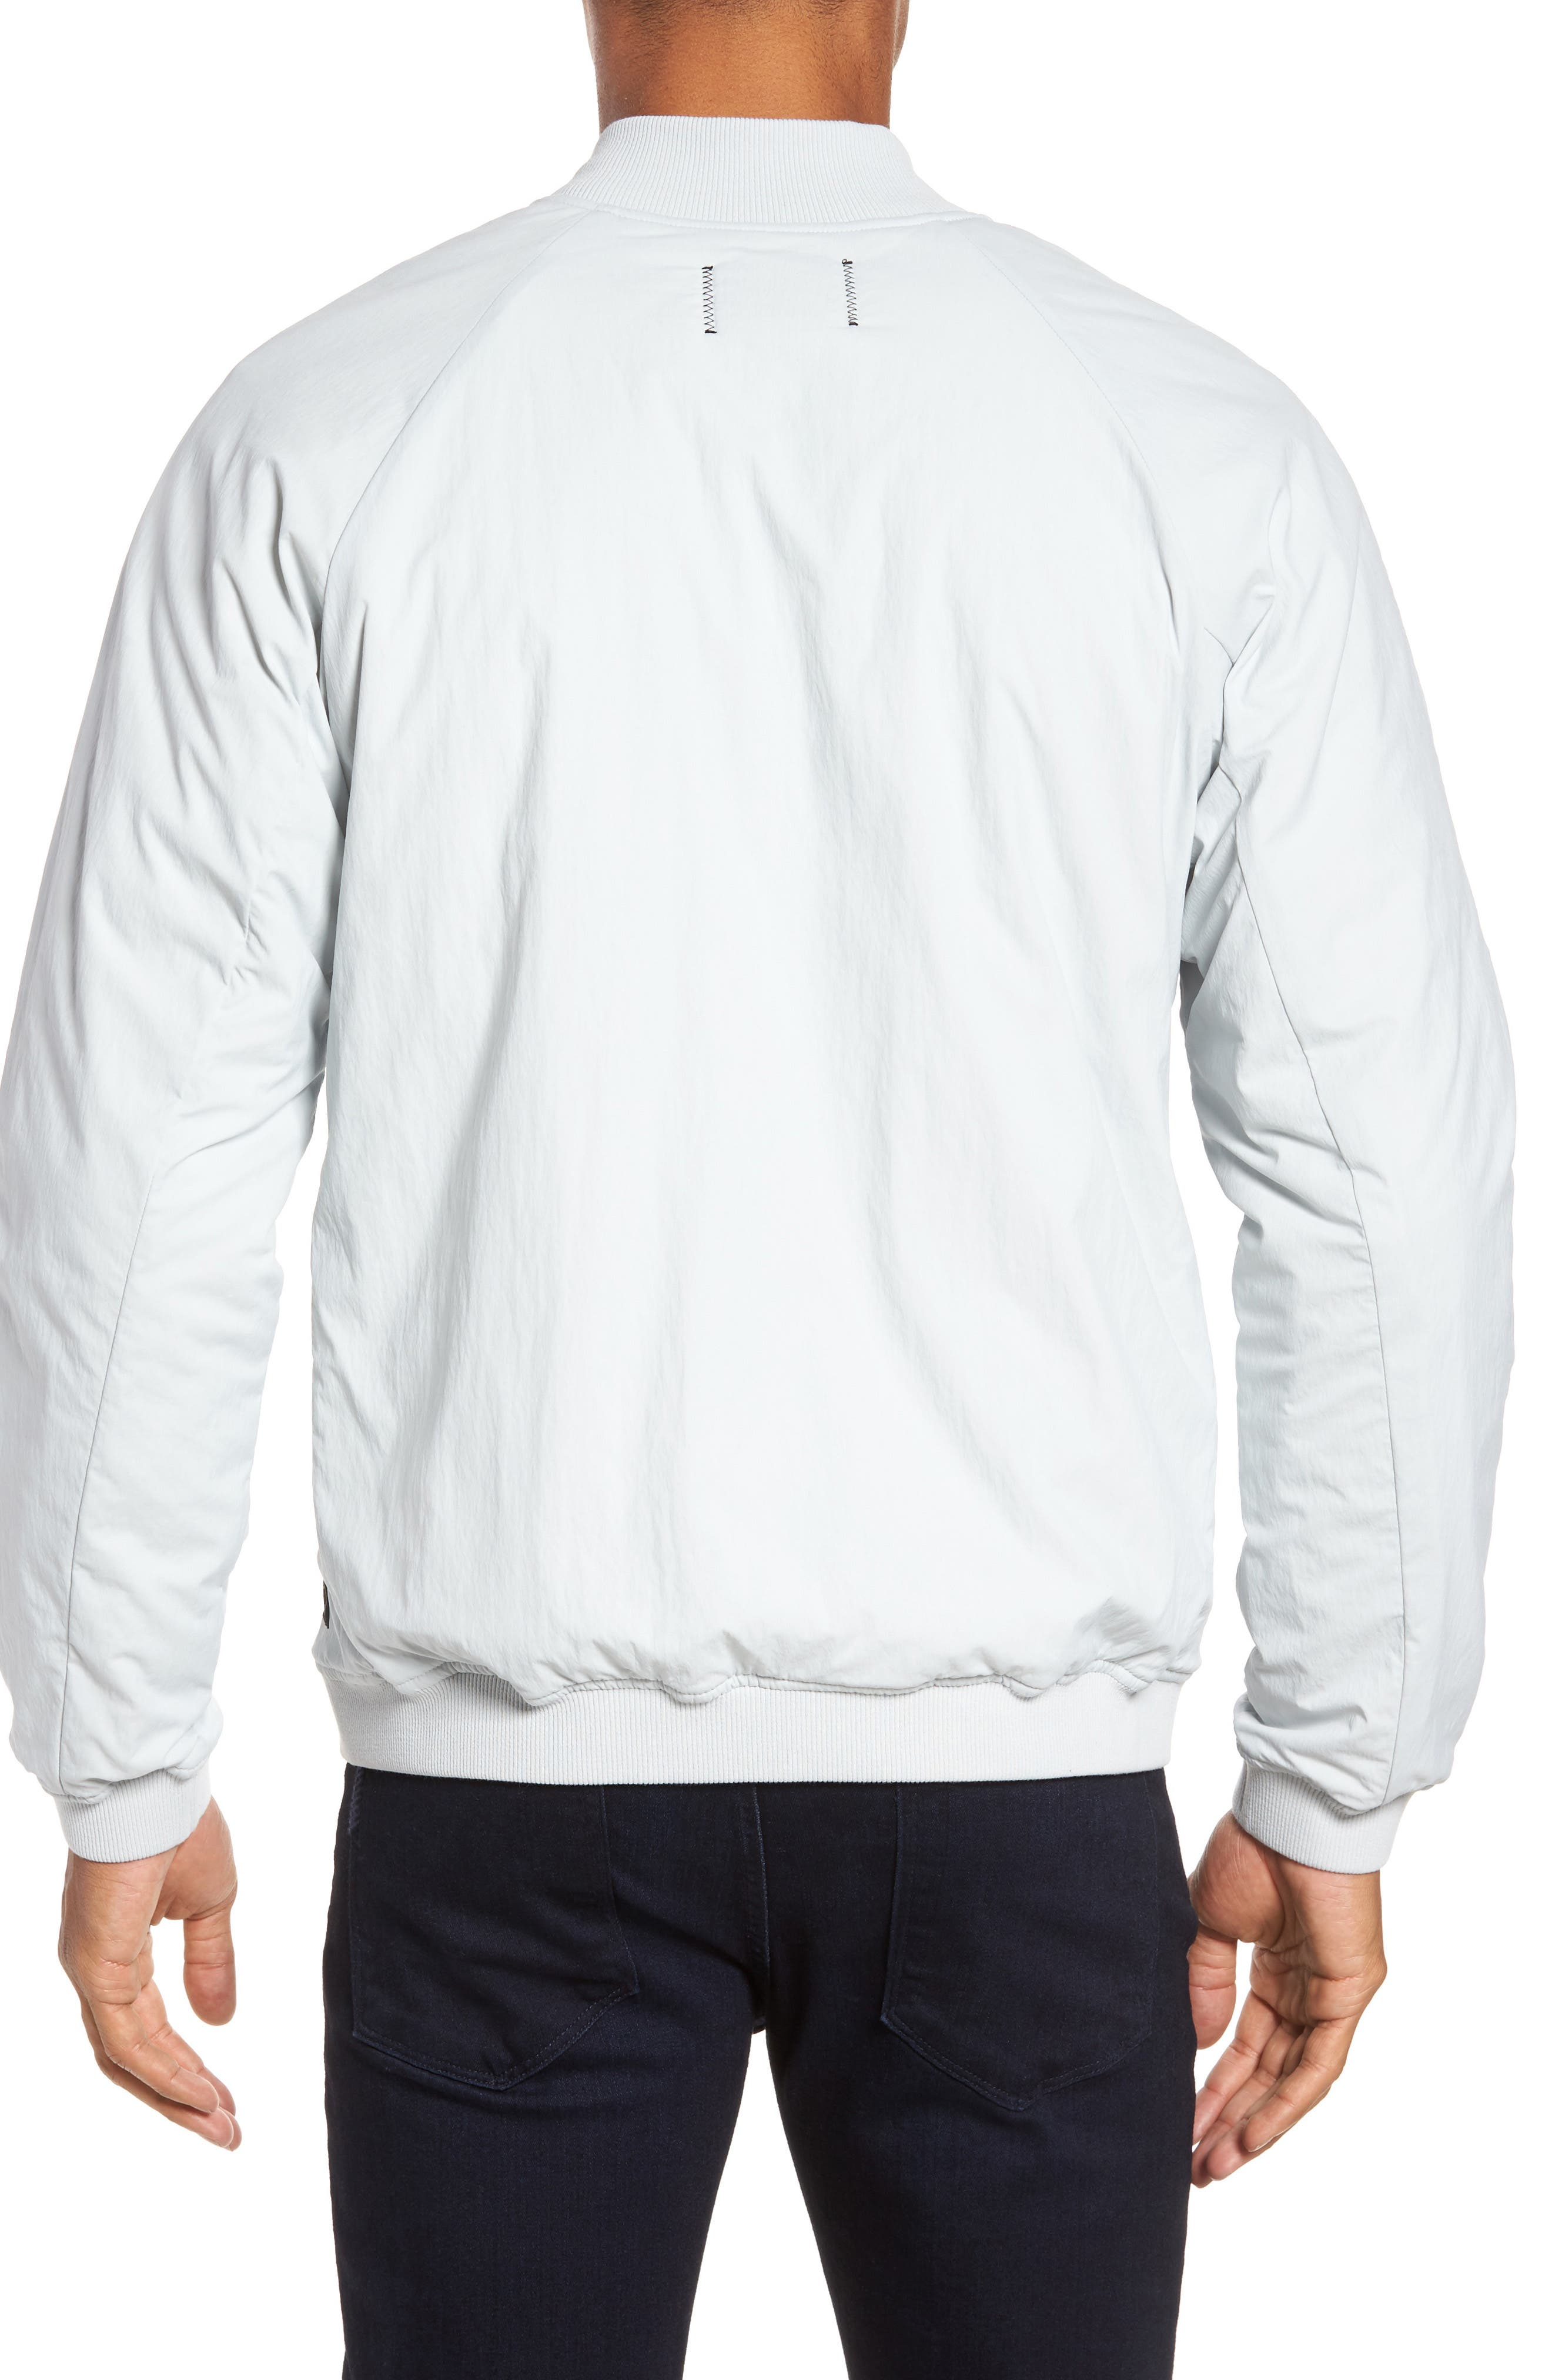 Insulated Bomber Jacket,                             Alternate thumbnail 2, color,                             Sky Grey